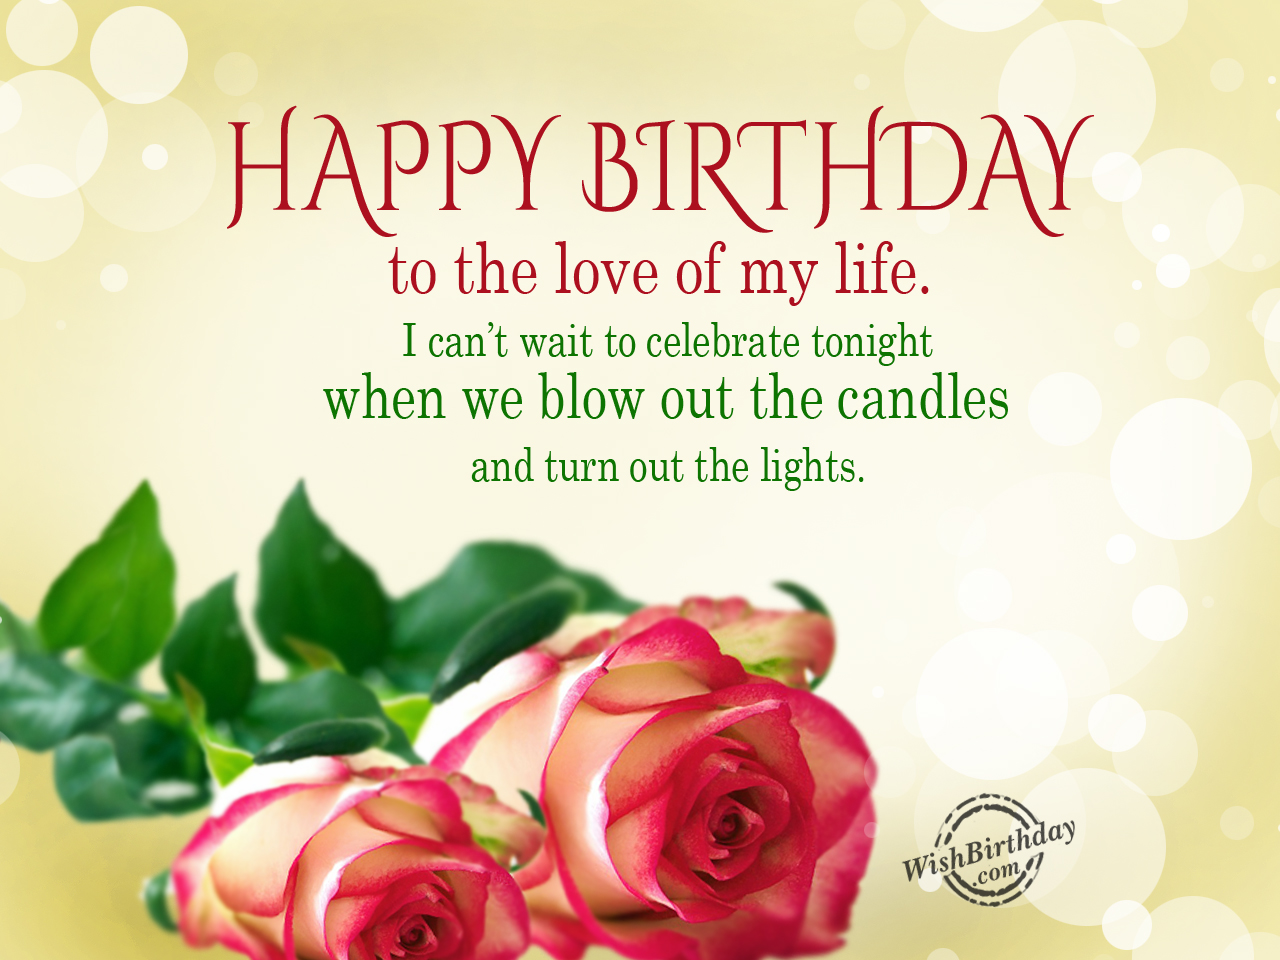 Happy Birthday Messages List Birthday Quotes Birthday Wishing Happy Birthday To My Lovely